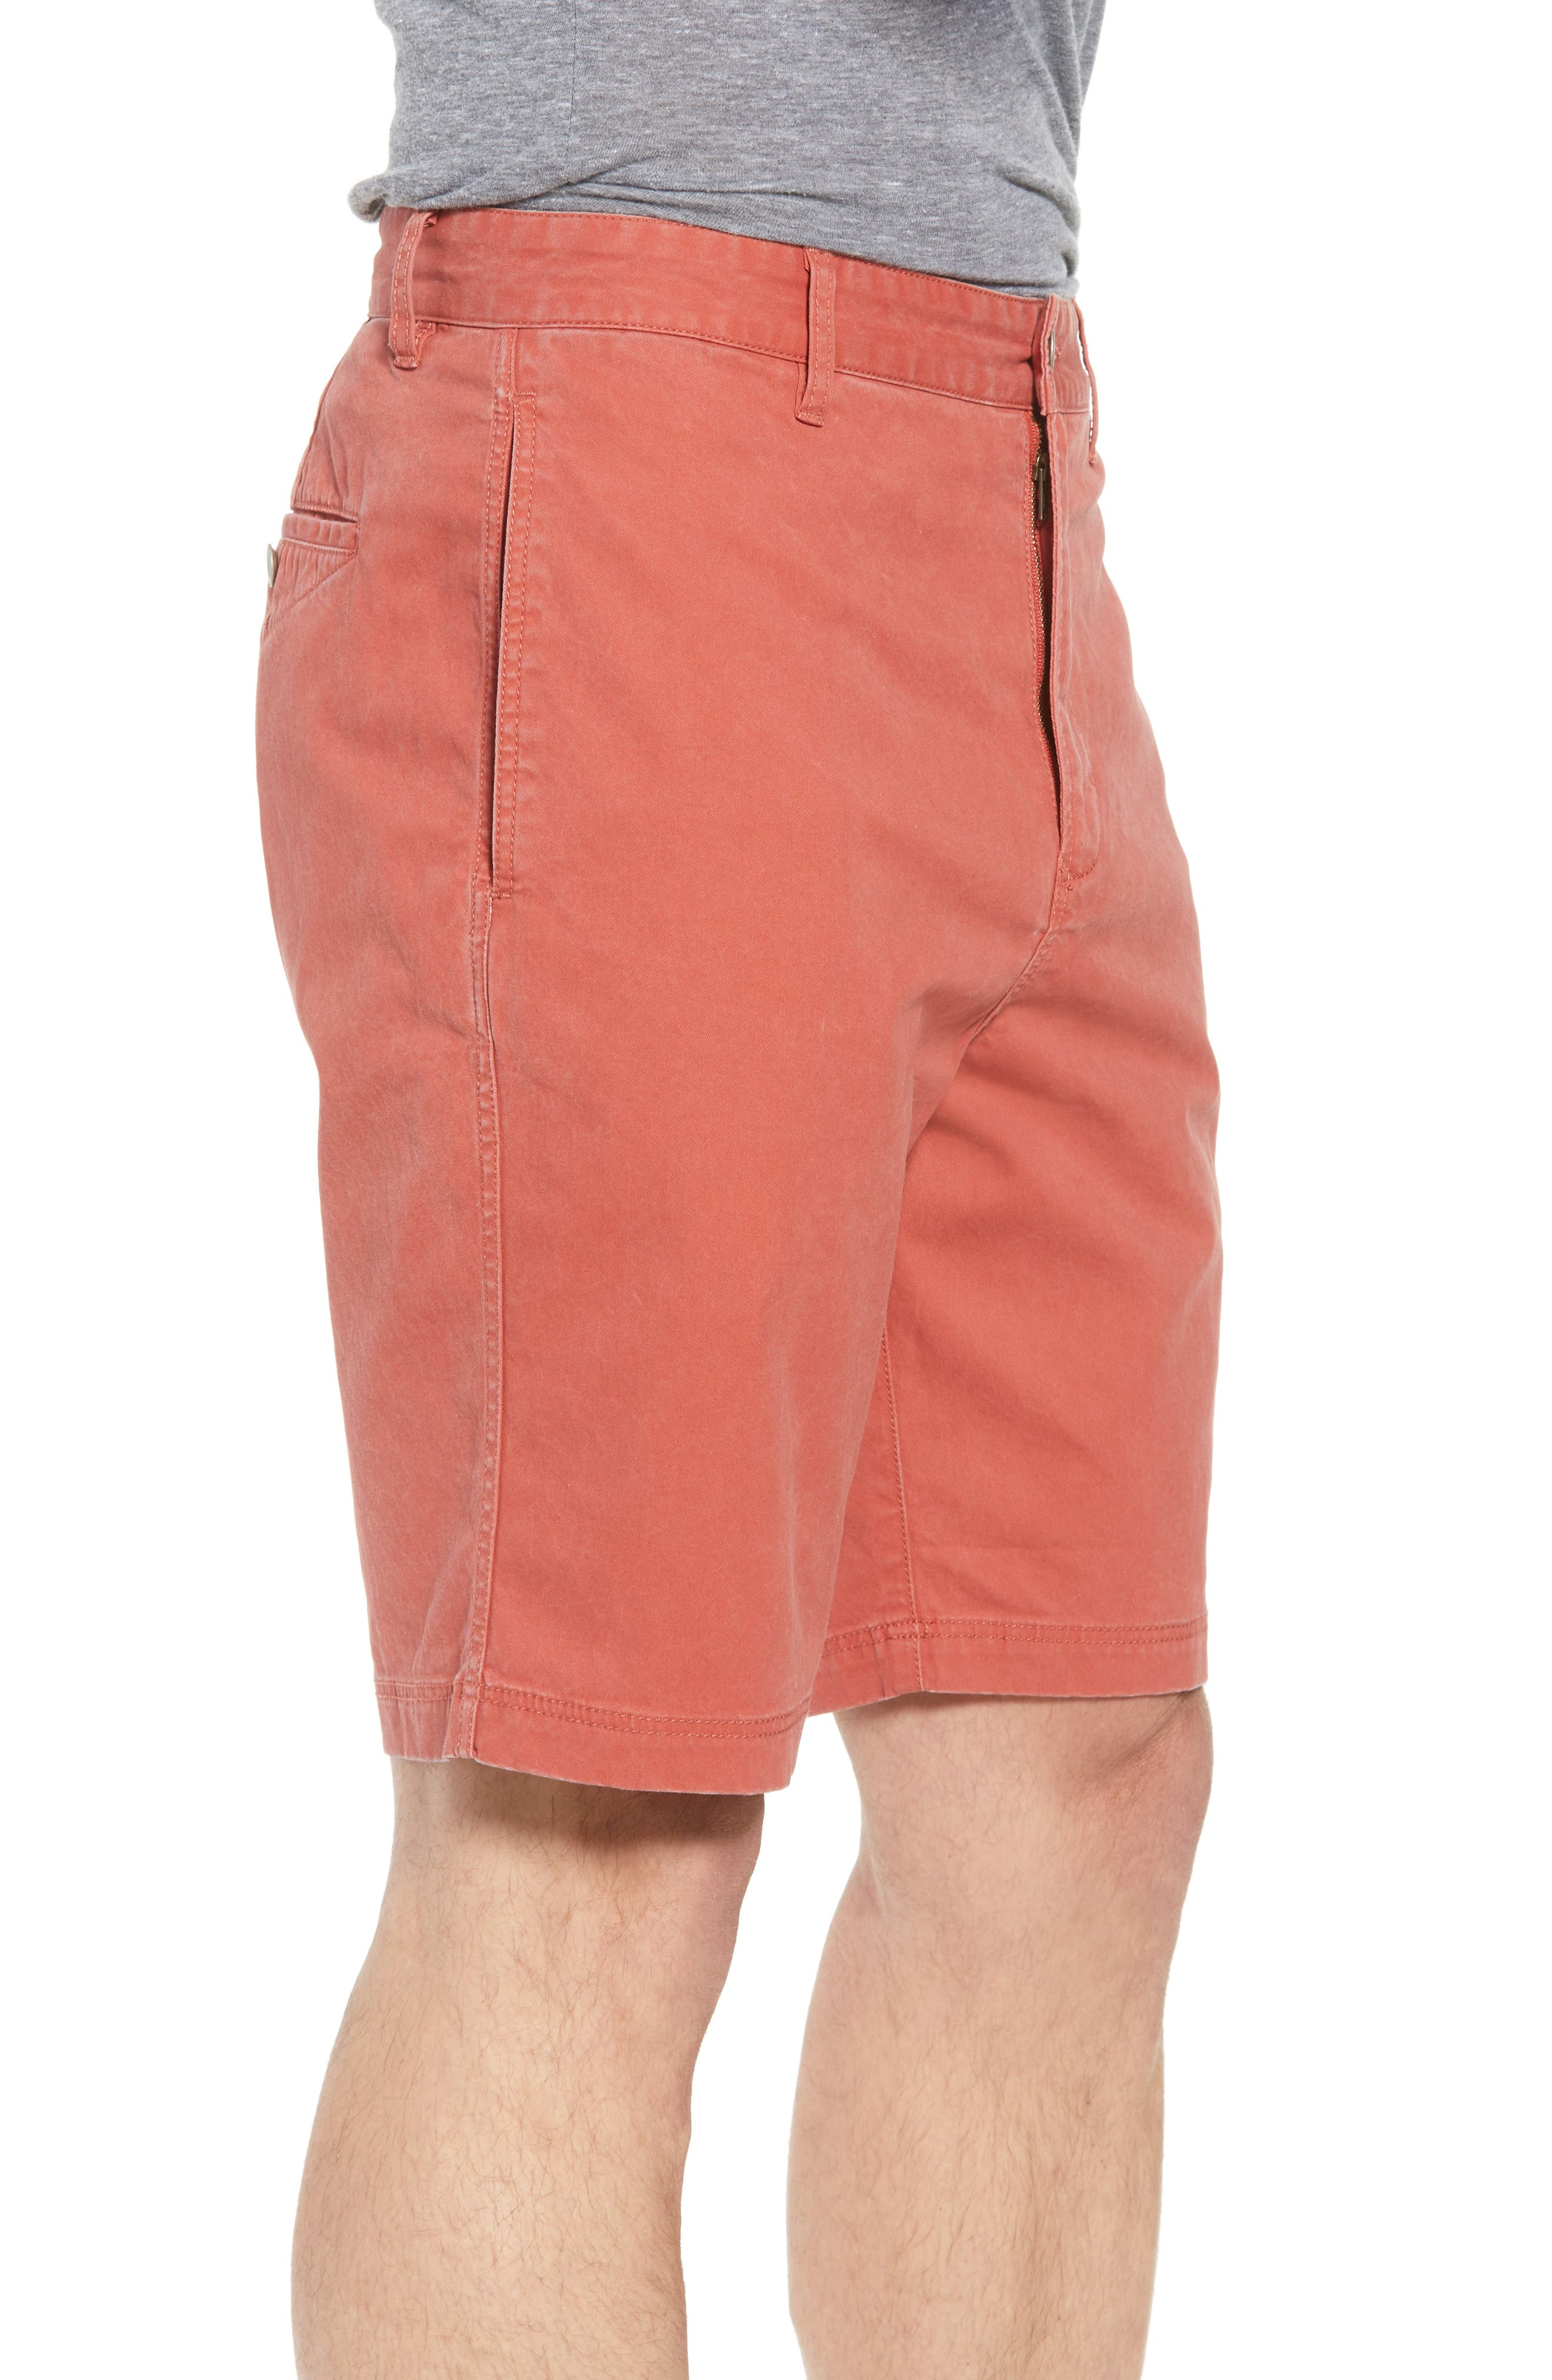 Glenburn Shorts,                             Alternate thumbnail 4, color,                             Red Ochre